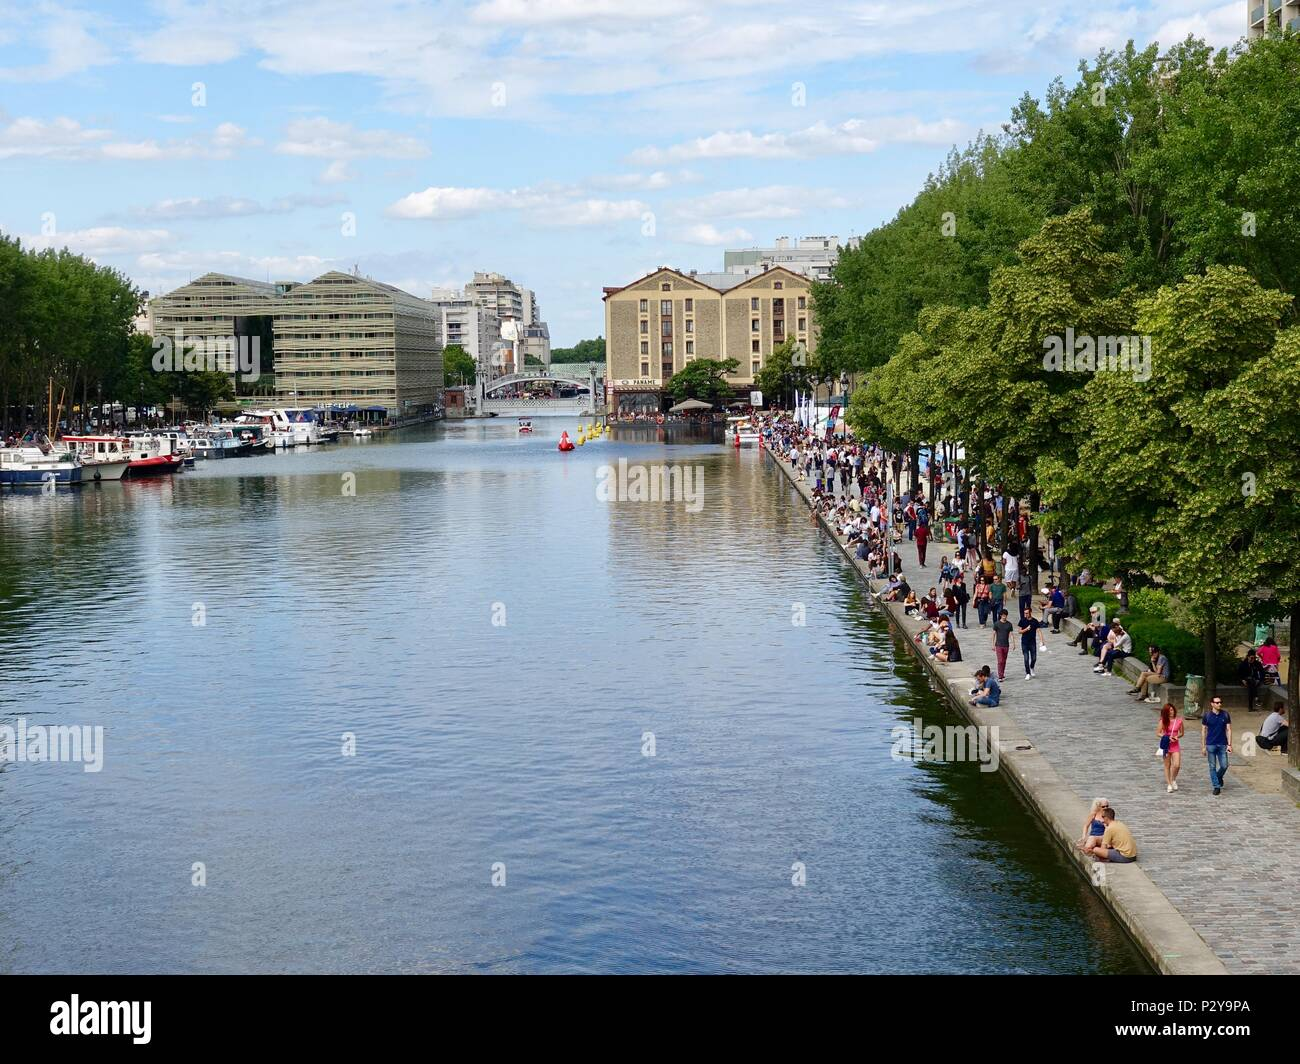 People line the banks of the canal on a warm Saturday afternoon at at Bassin de la Villette, Paris, France - Stock Image